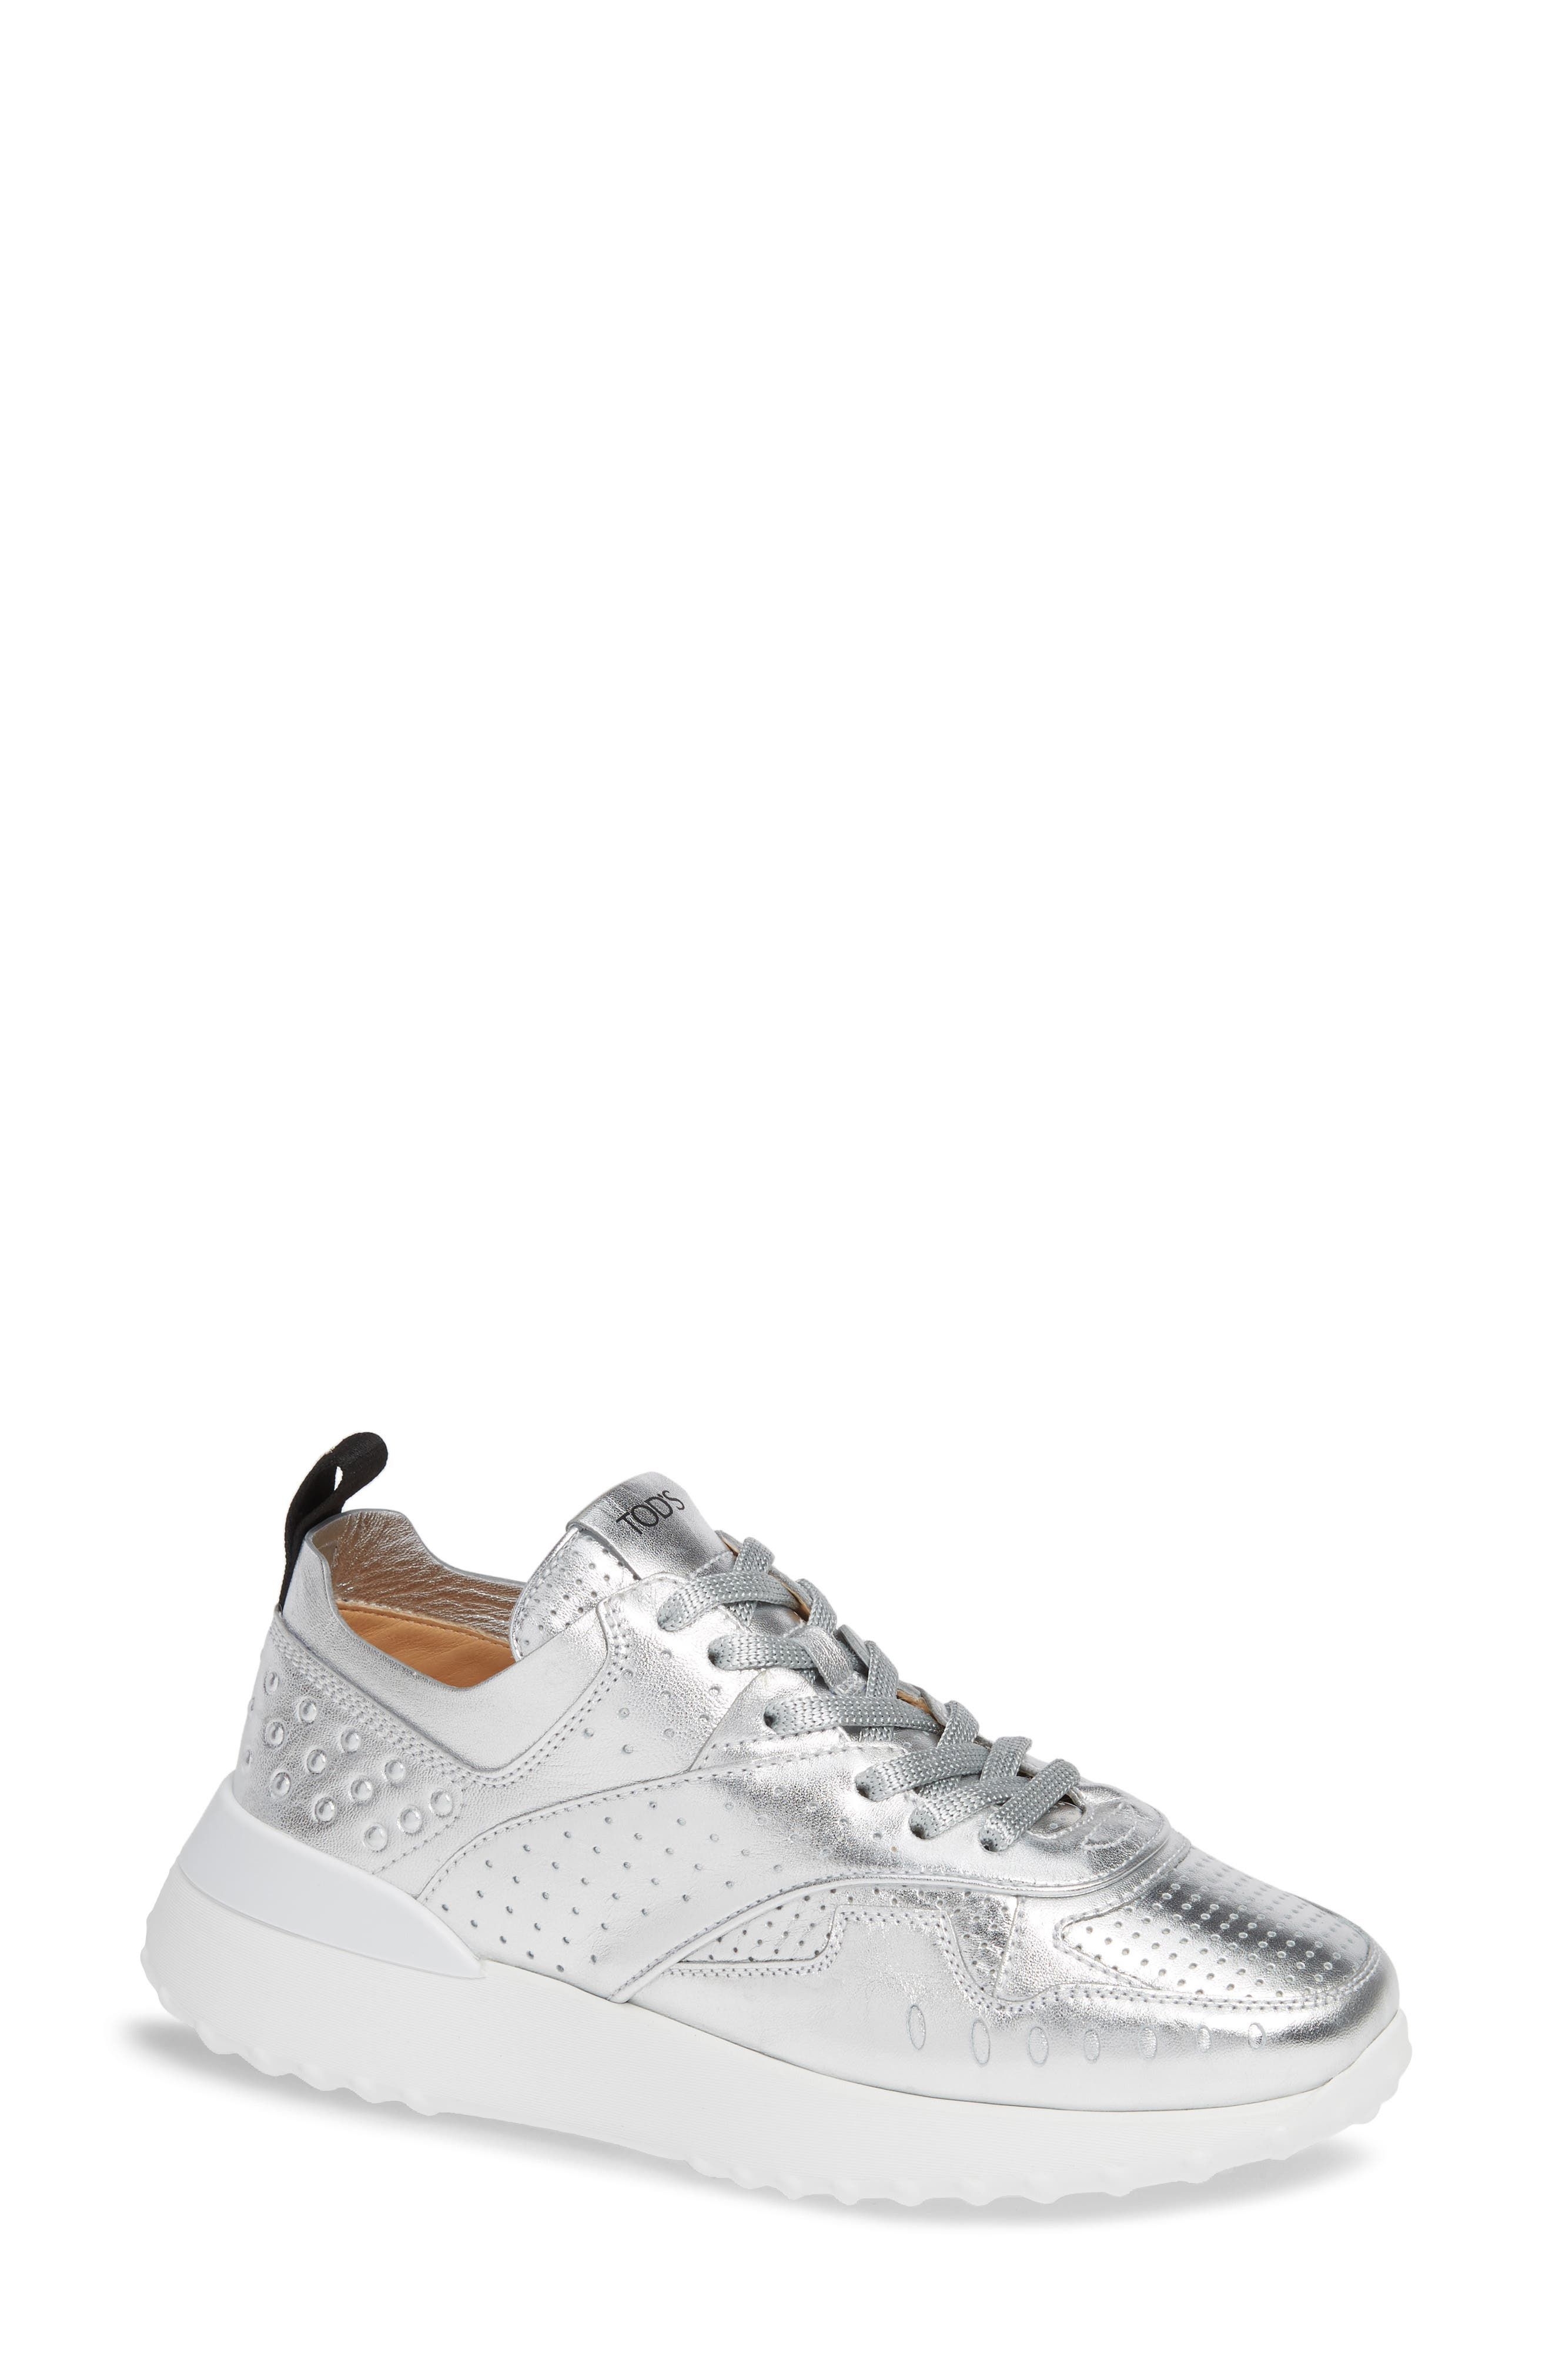 Perforated Lace-Up Sneaker,                             Main thumbnail 1, color,                             SILVER